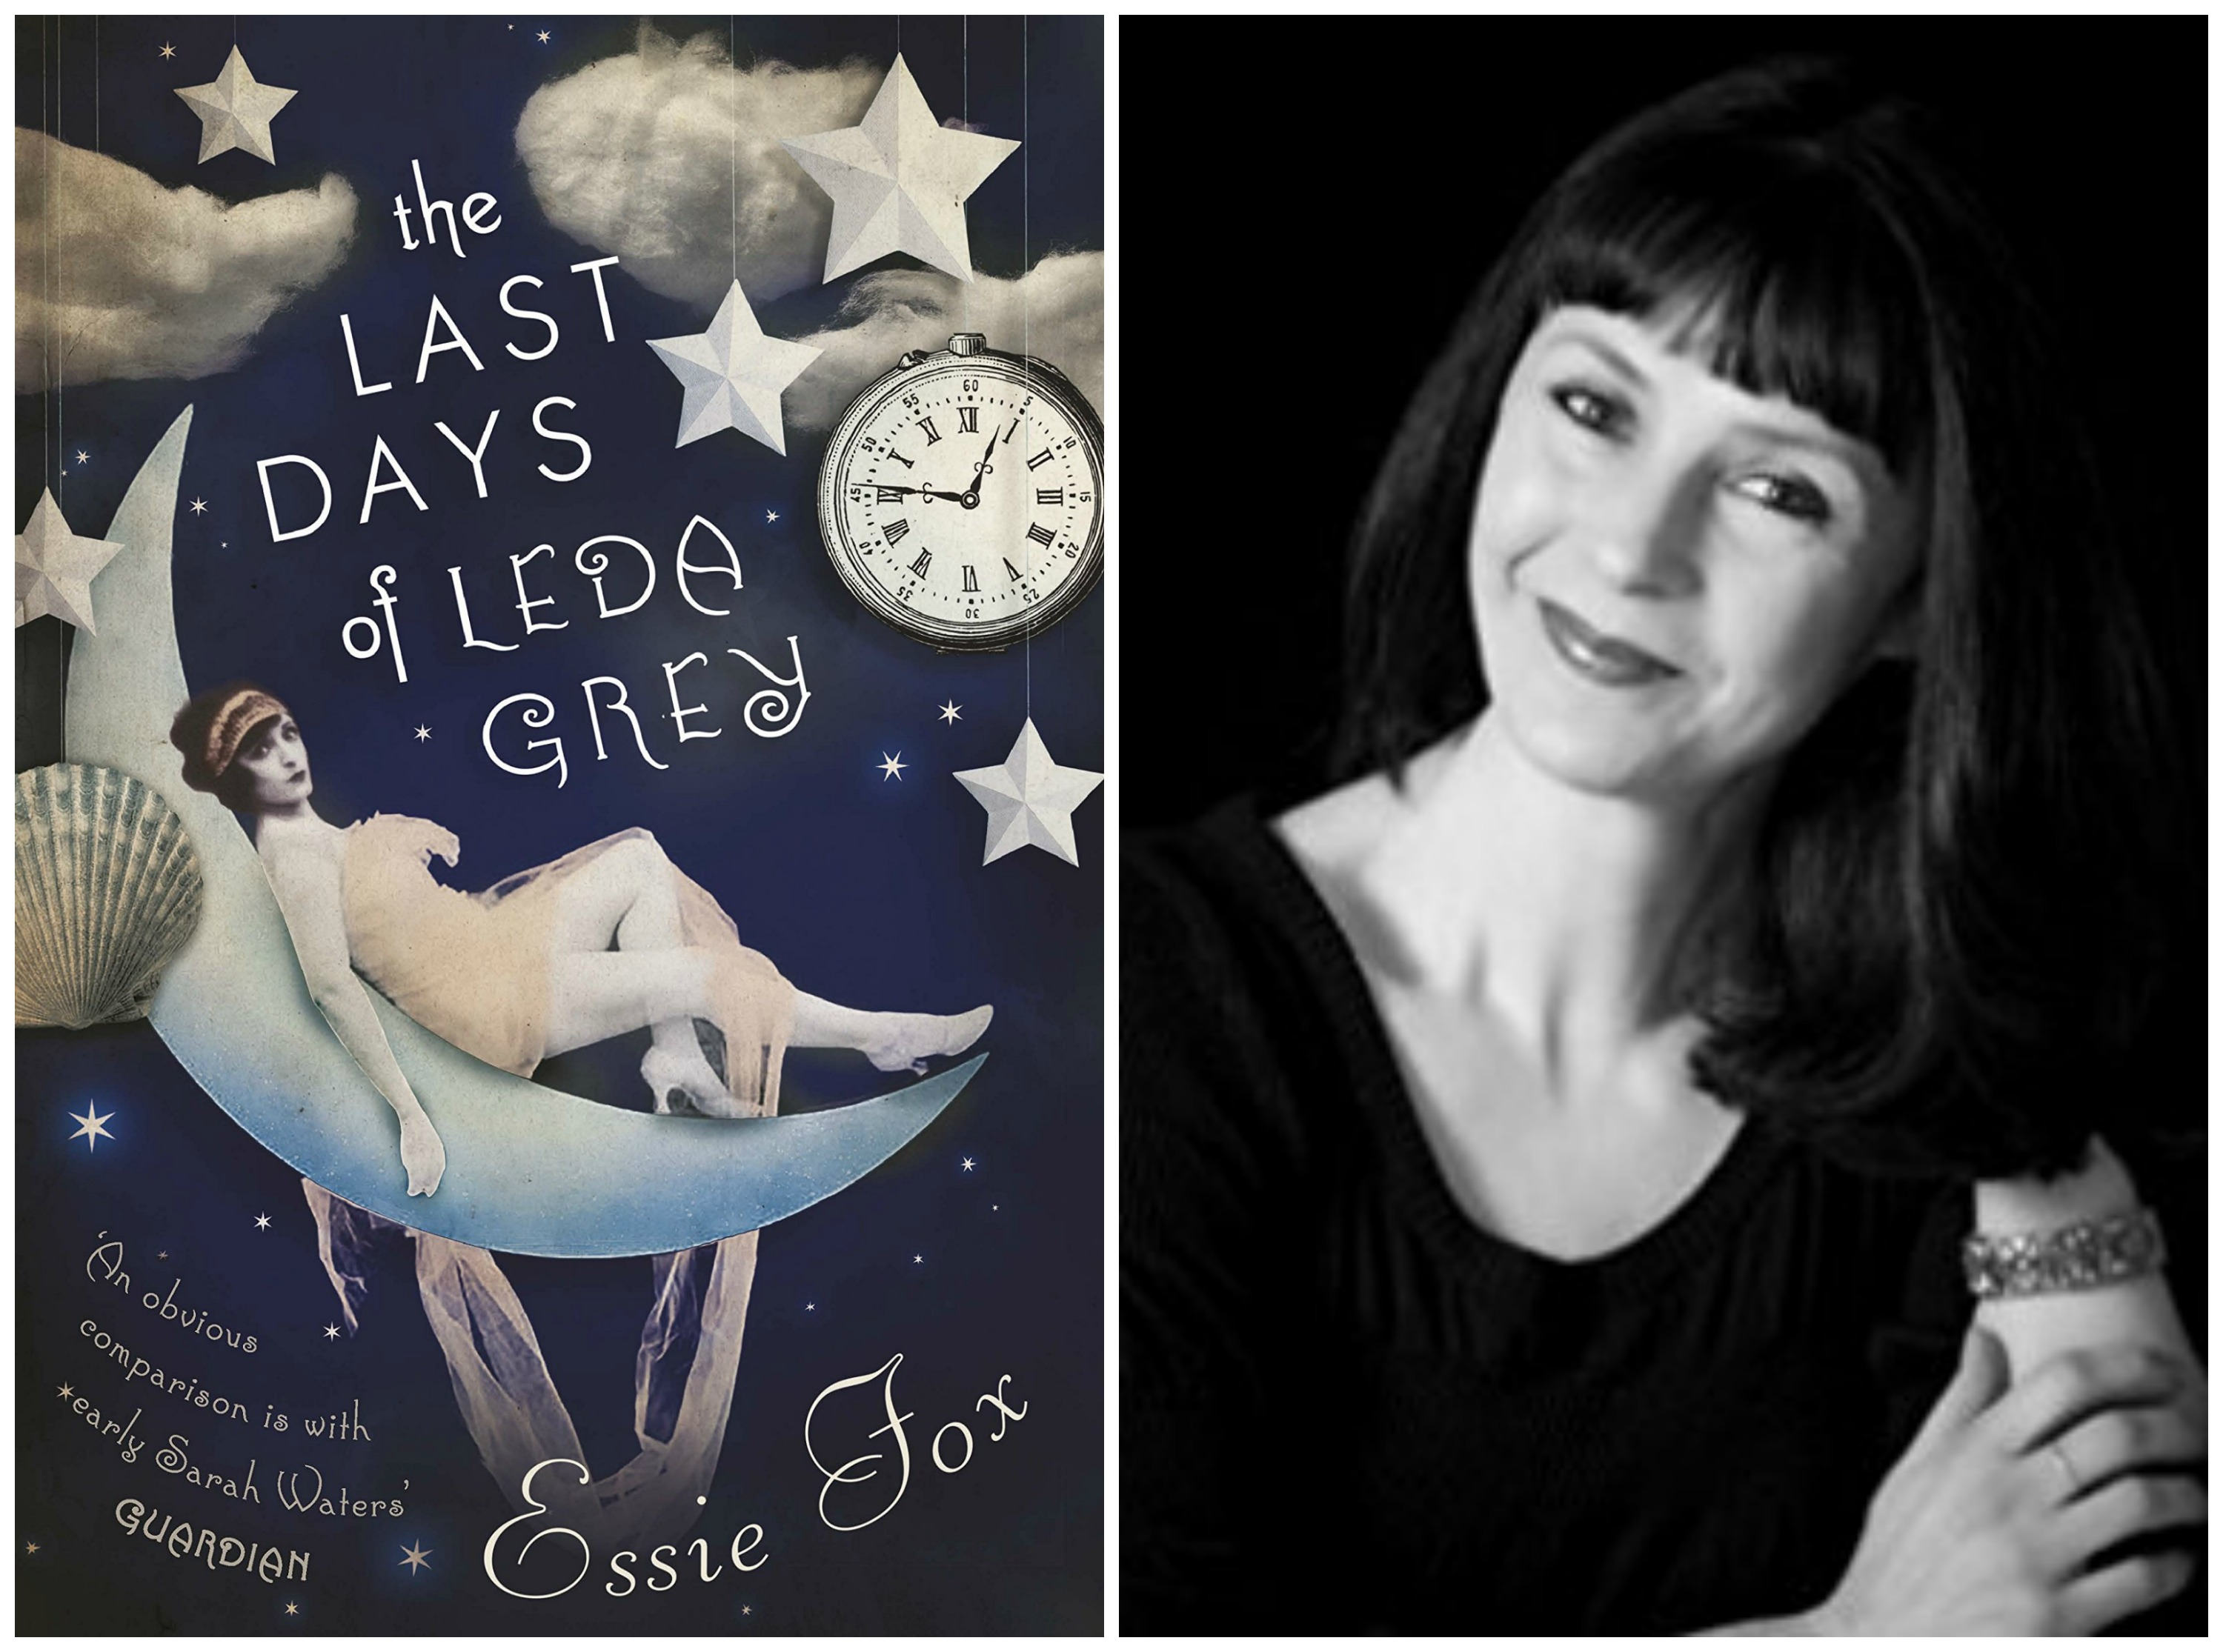 #Review: The Last Days of Leda Grey by Essie Fox @essiefox @orionbooks #amreading